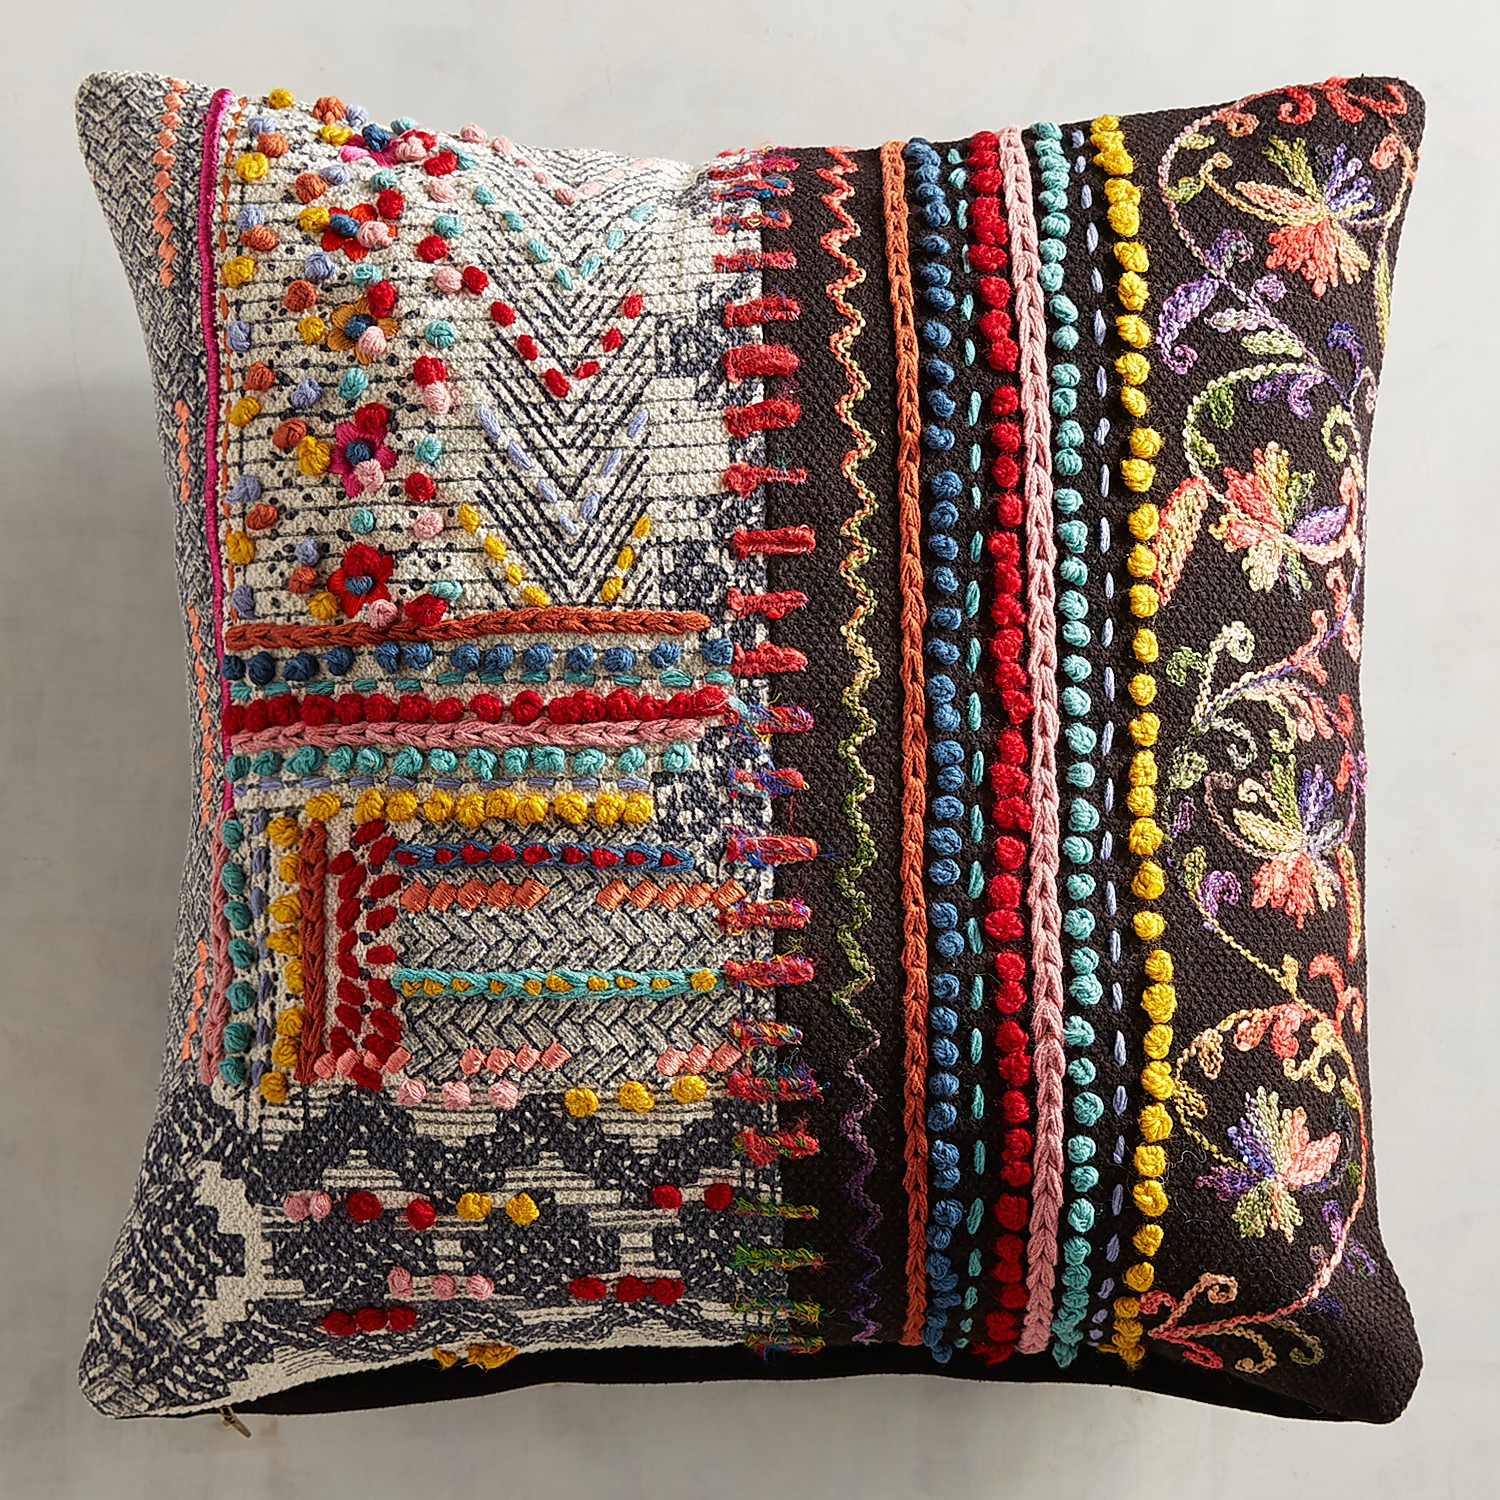 Global Patchwork Pillow